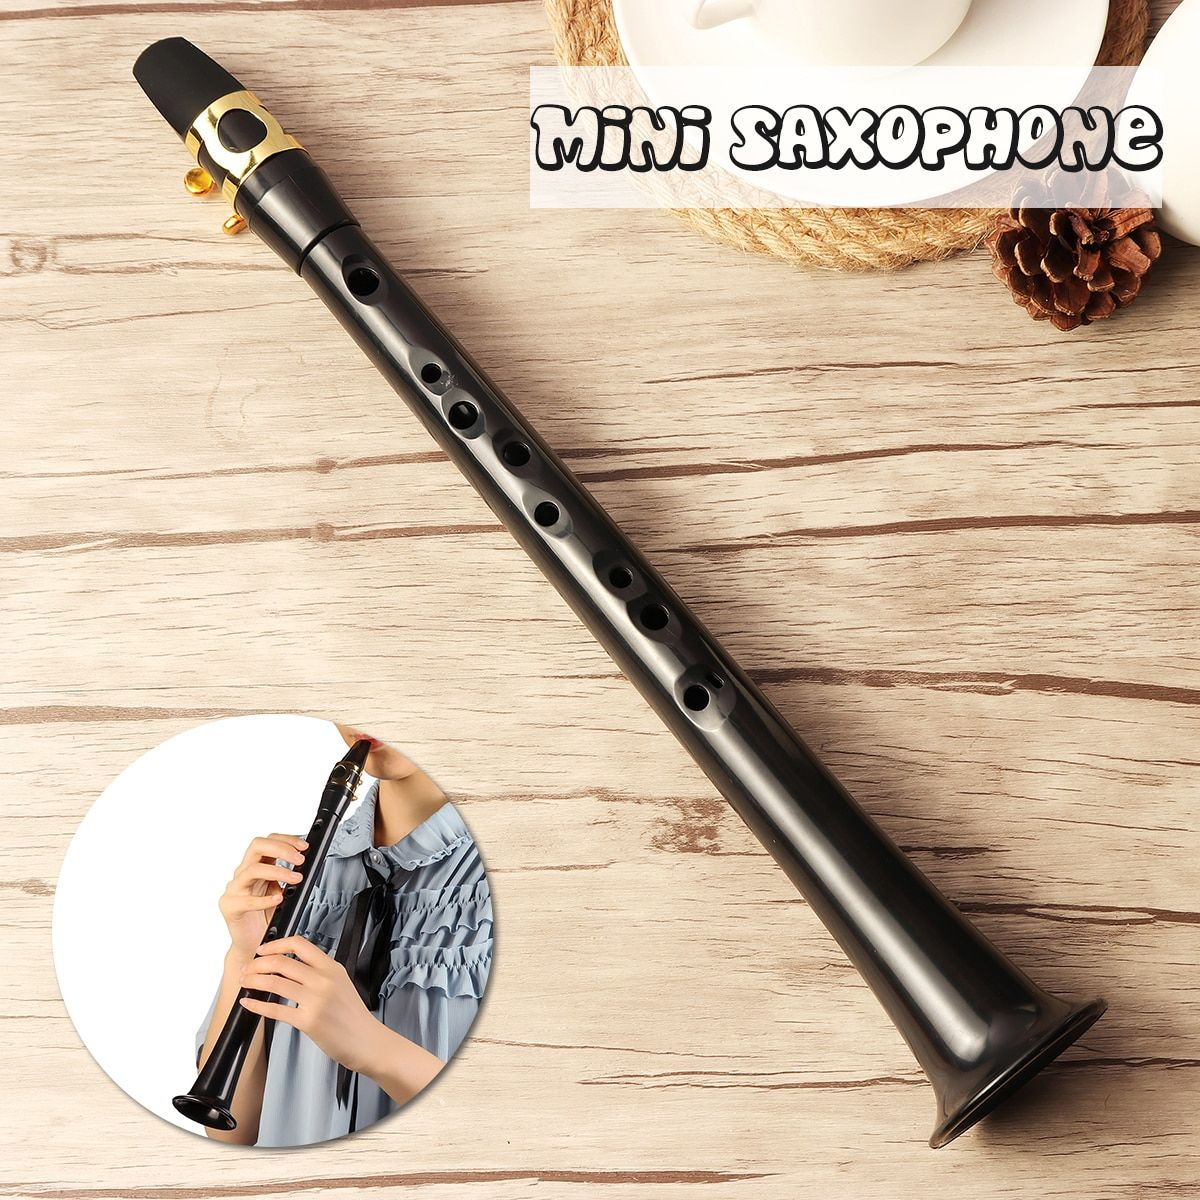 Black LittleSax Mini Sax Portable C Key Saxophone ABS Lightweight Sax Musical Instruments with Carrying Bag for Begginer